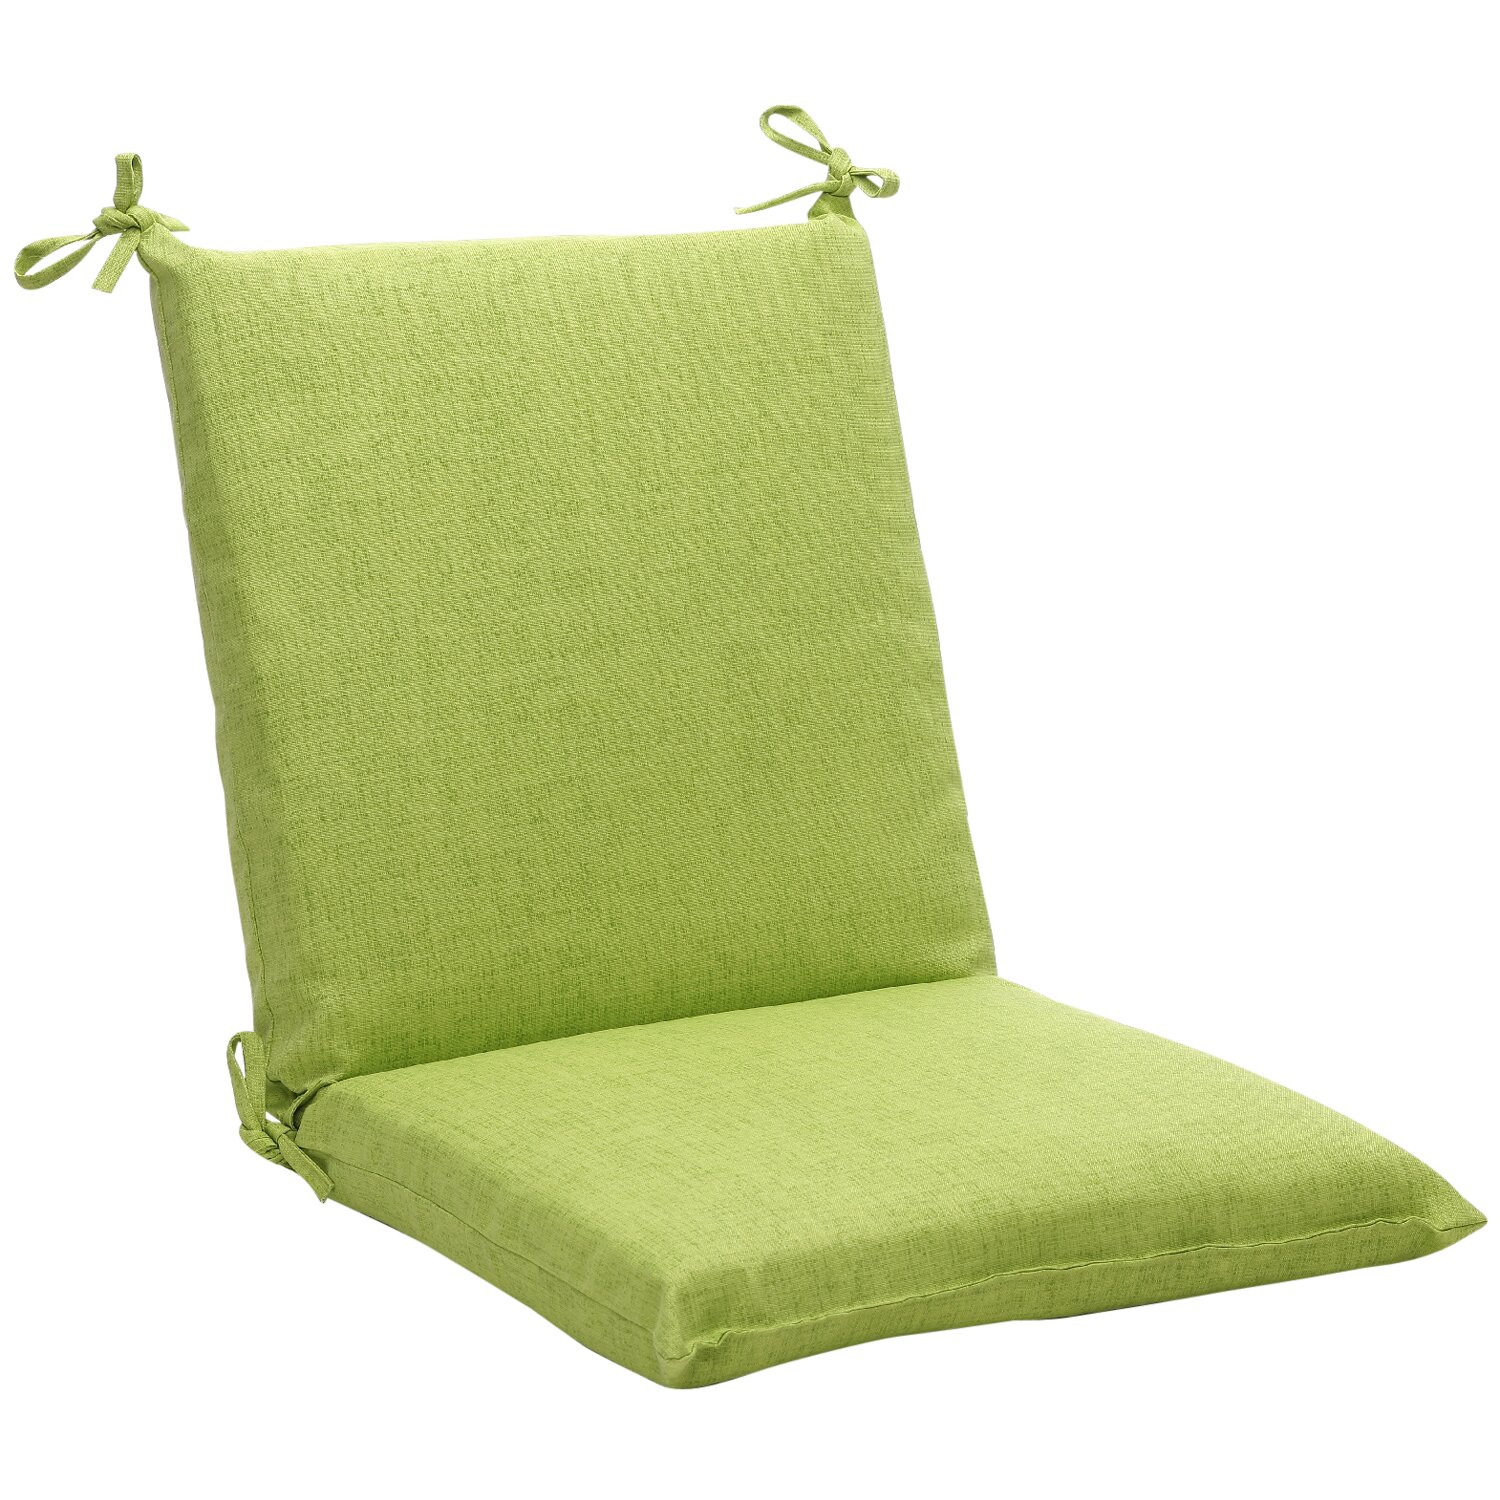 Pillow Perfect Outdoor Outdoor Lounge Chair Cushion